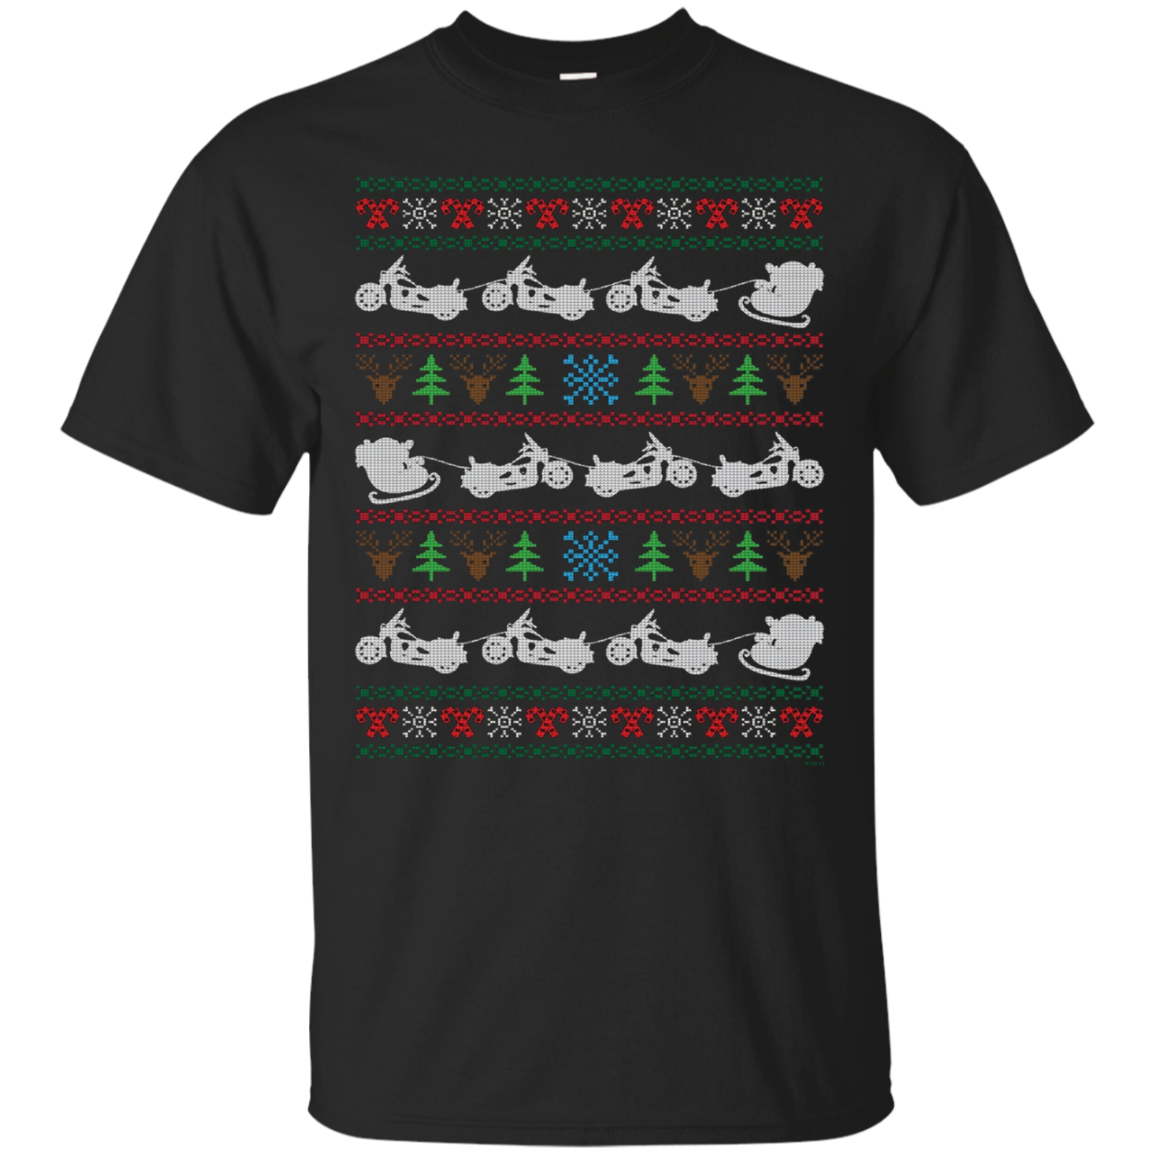 Motorcycle Ugly Christmas Sweater, Santa on Motorcycle Shirt